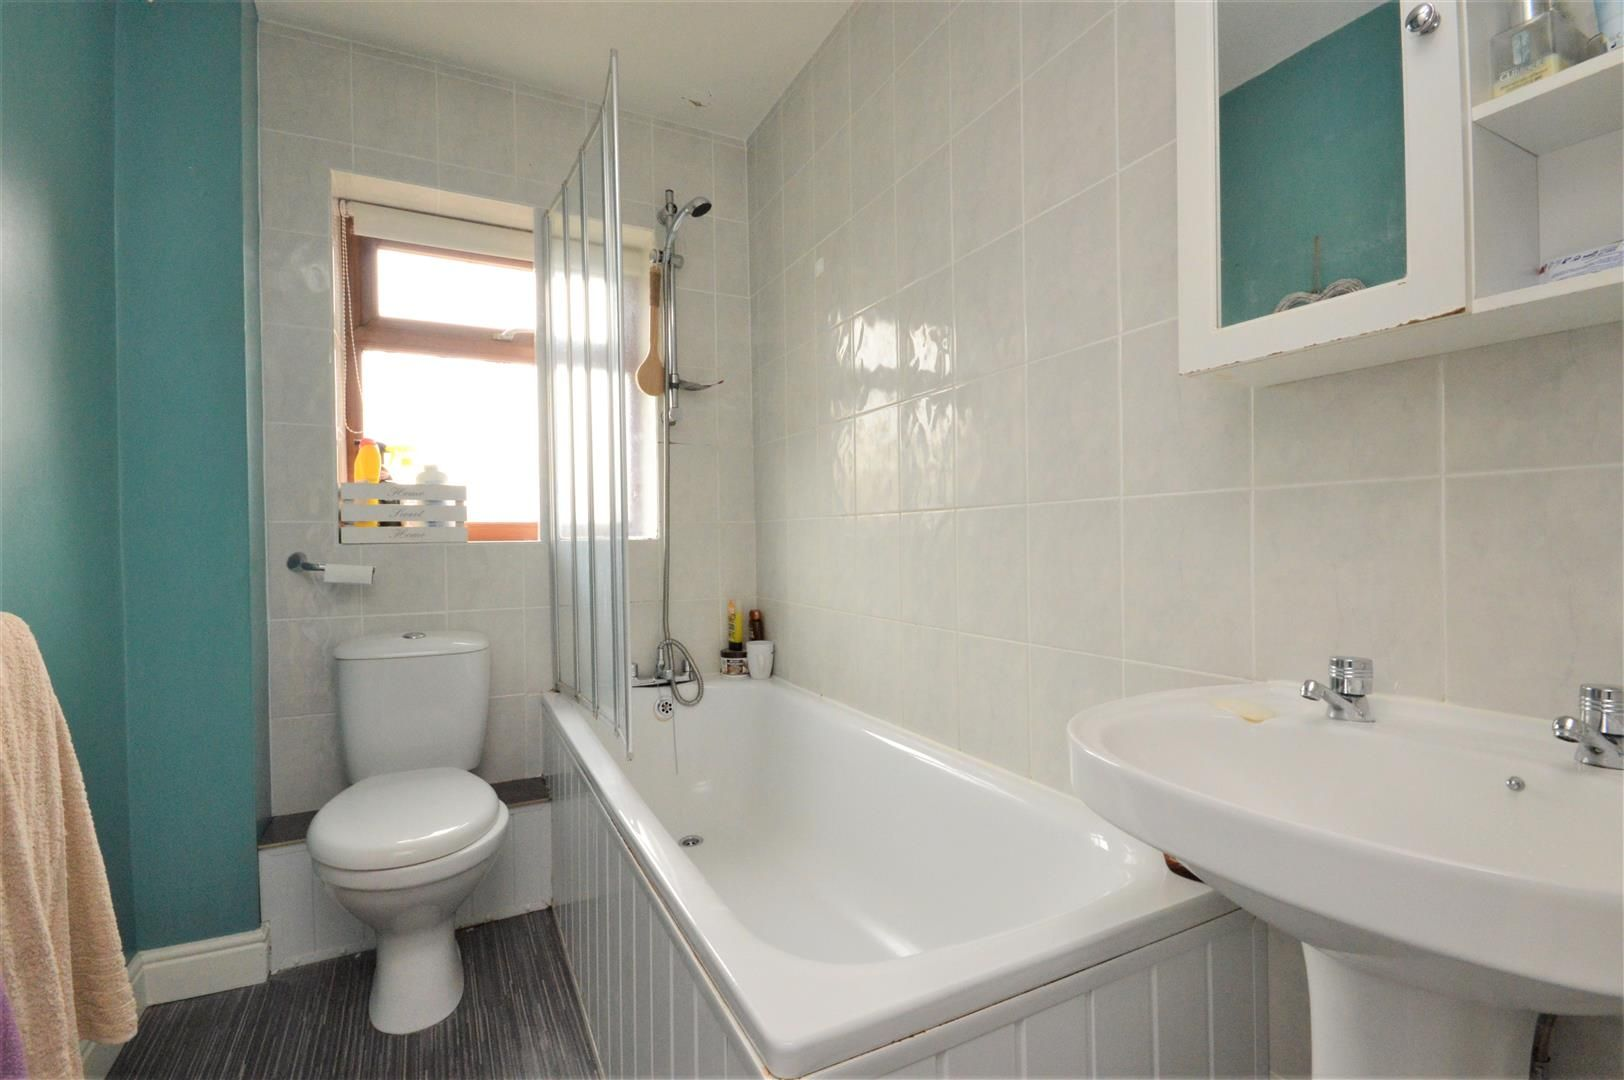 2 bed end of terrace for sale in Lower Bullingham  - Property Image 5